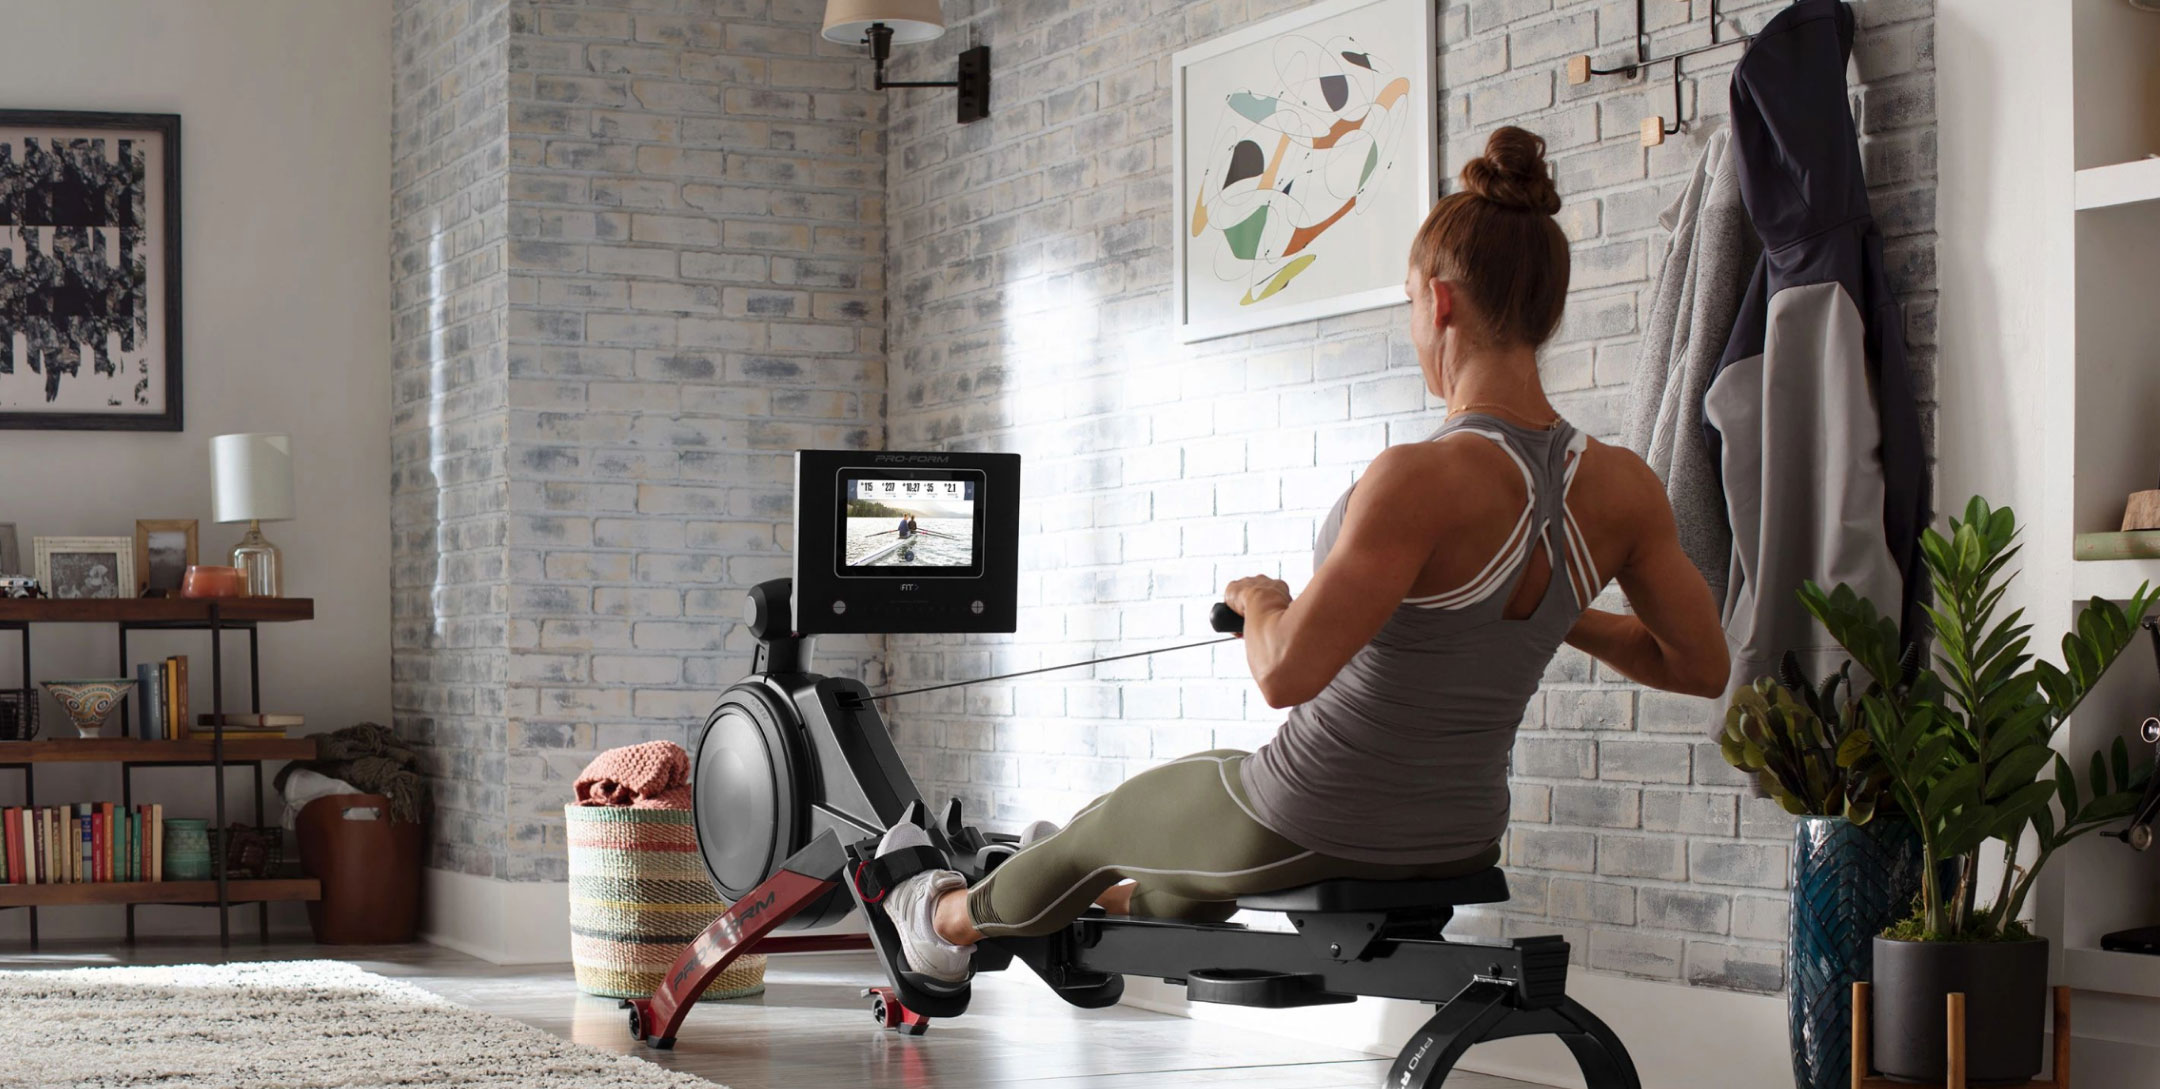 Woman uses rower at home